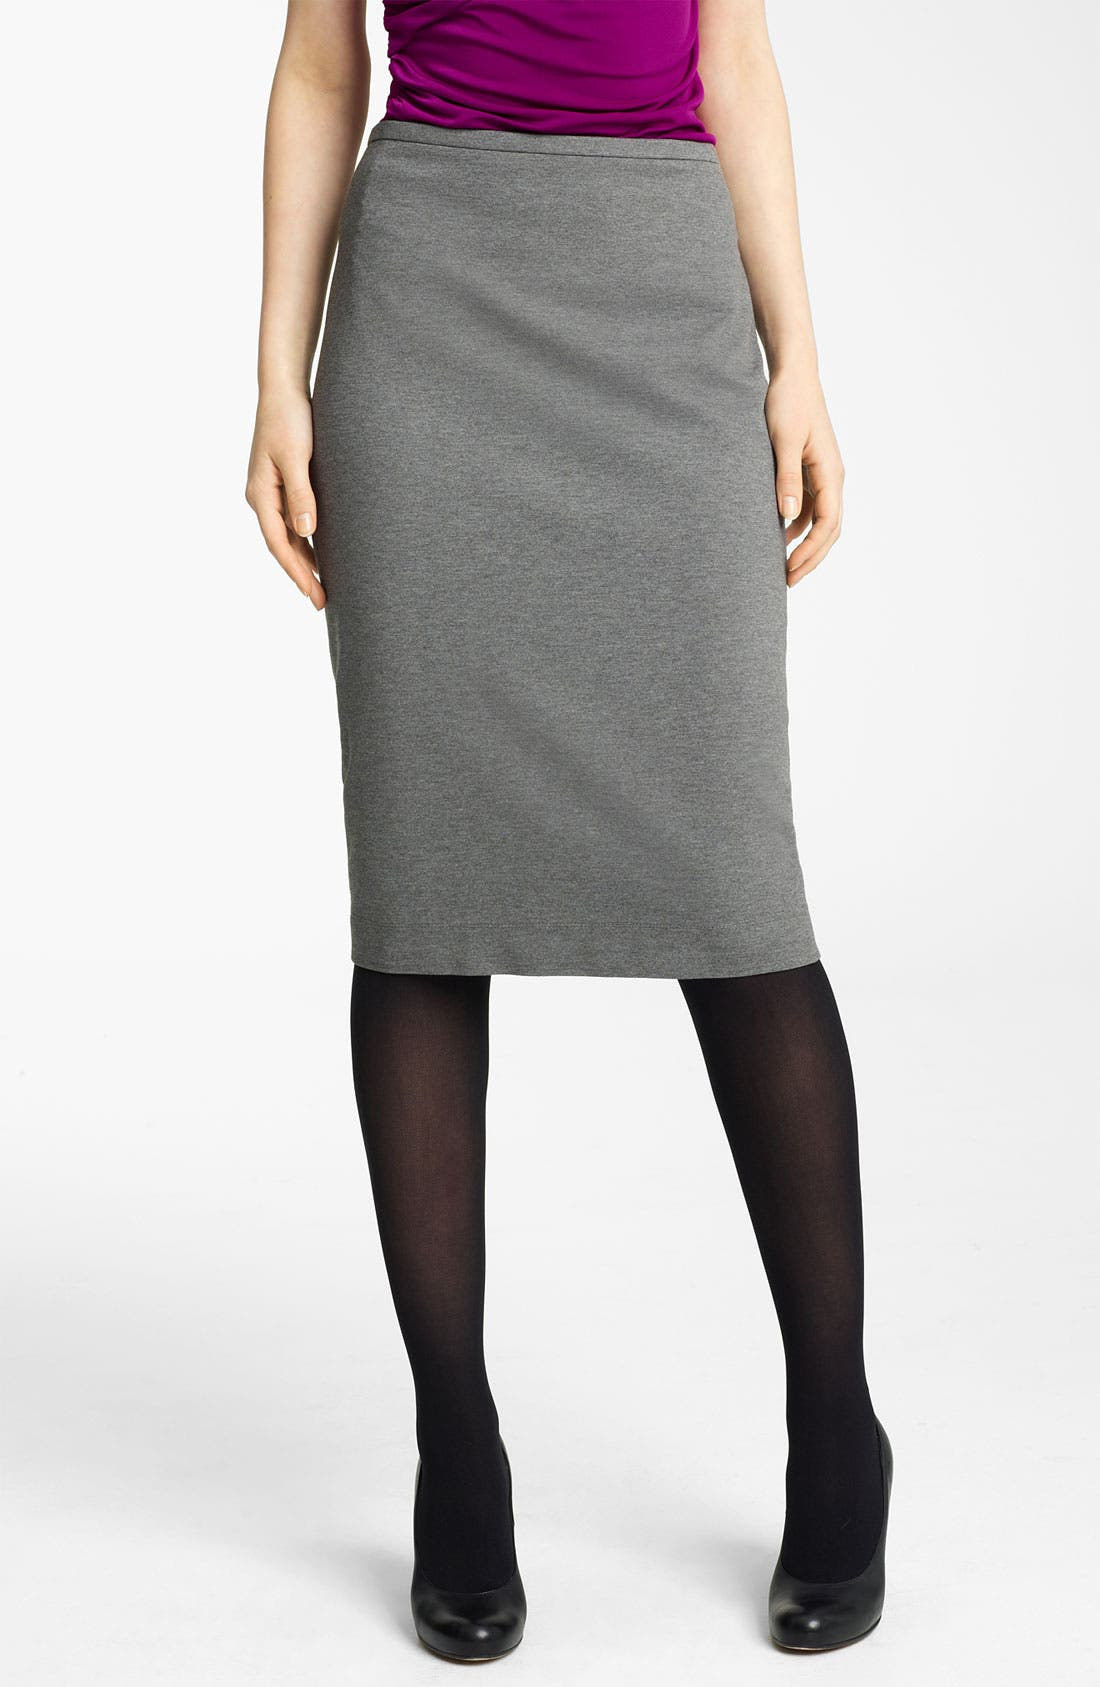 Alternate Image 1 Selected - Lida Baday Knit Skirt